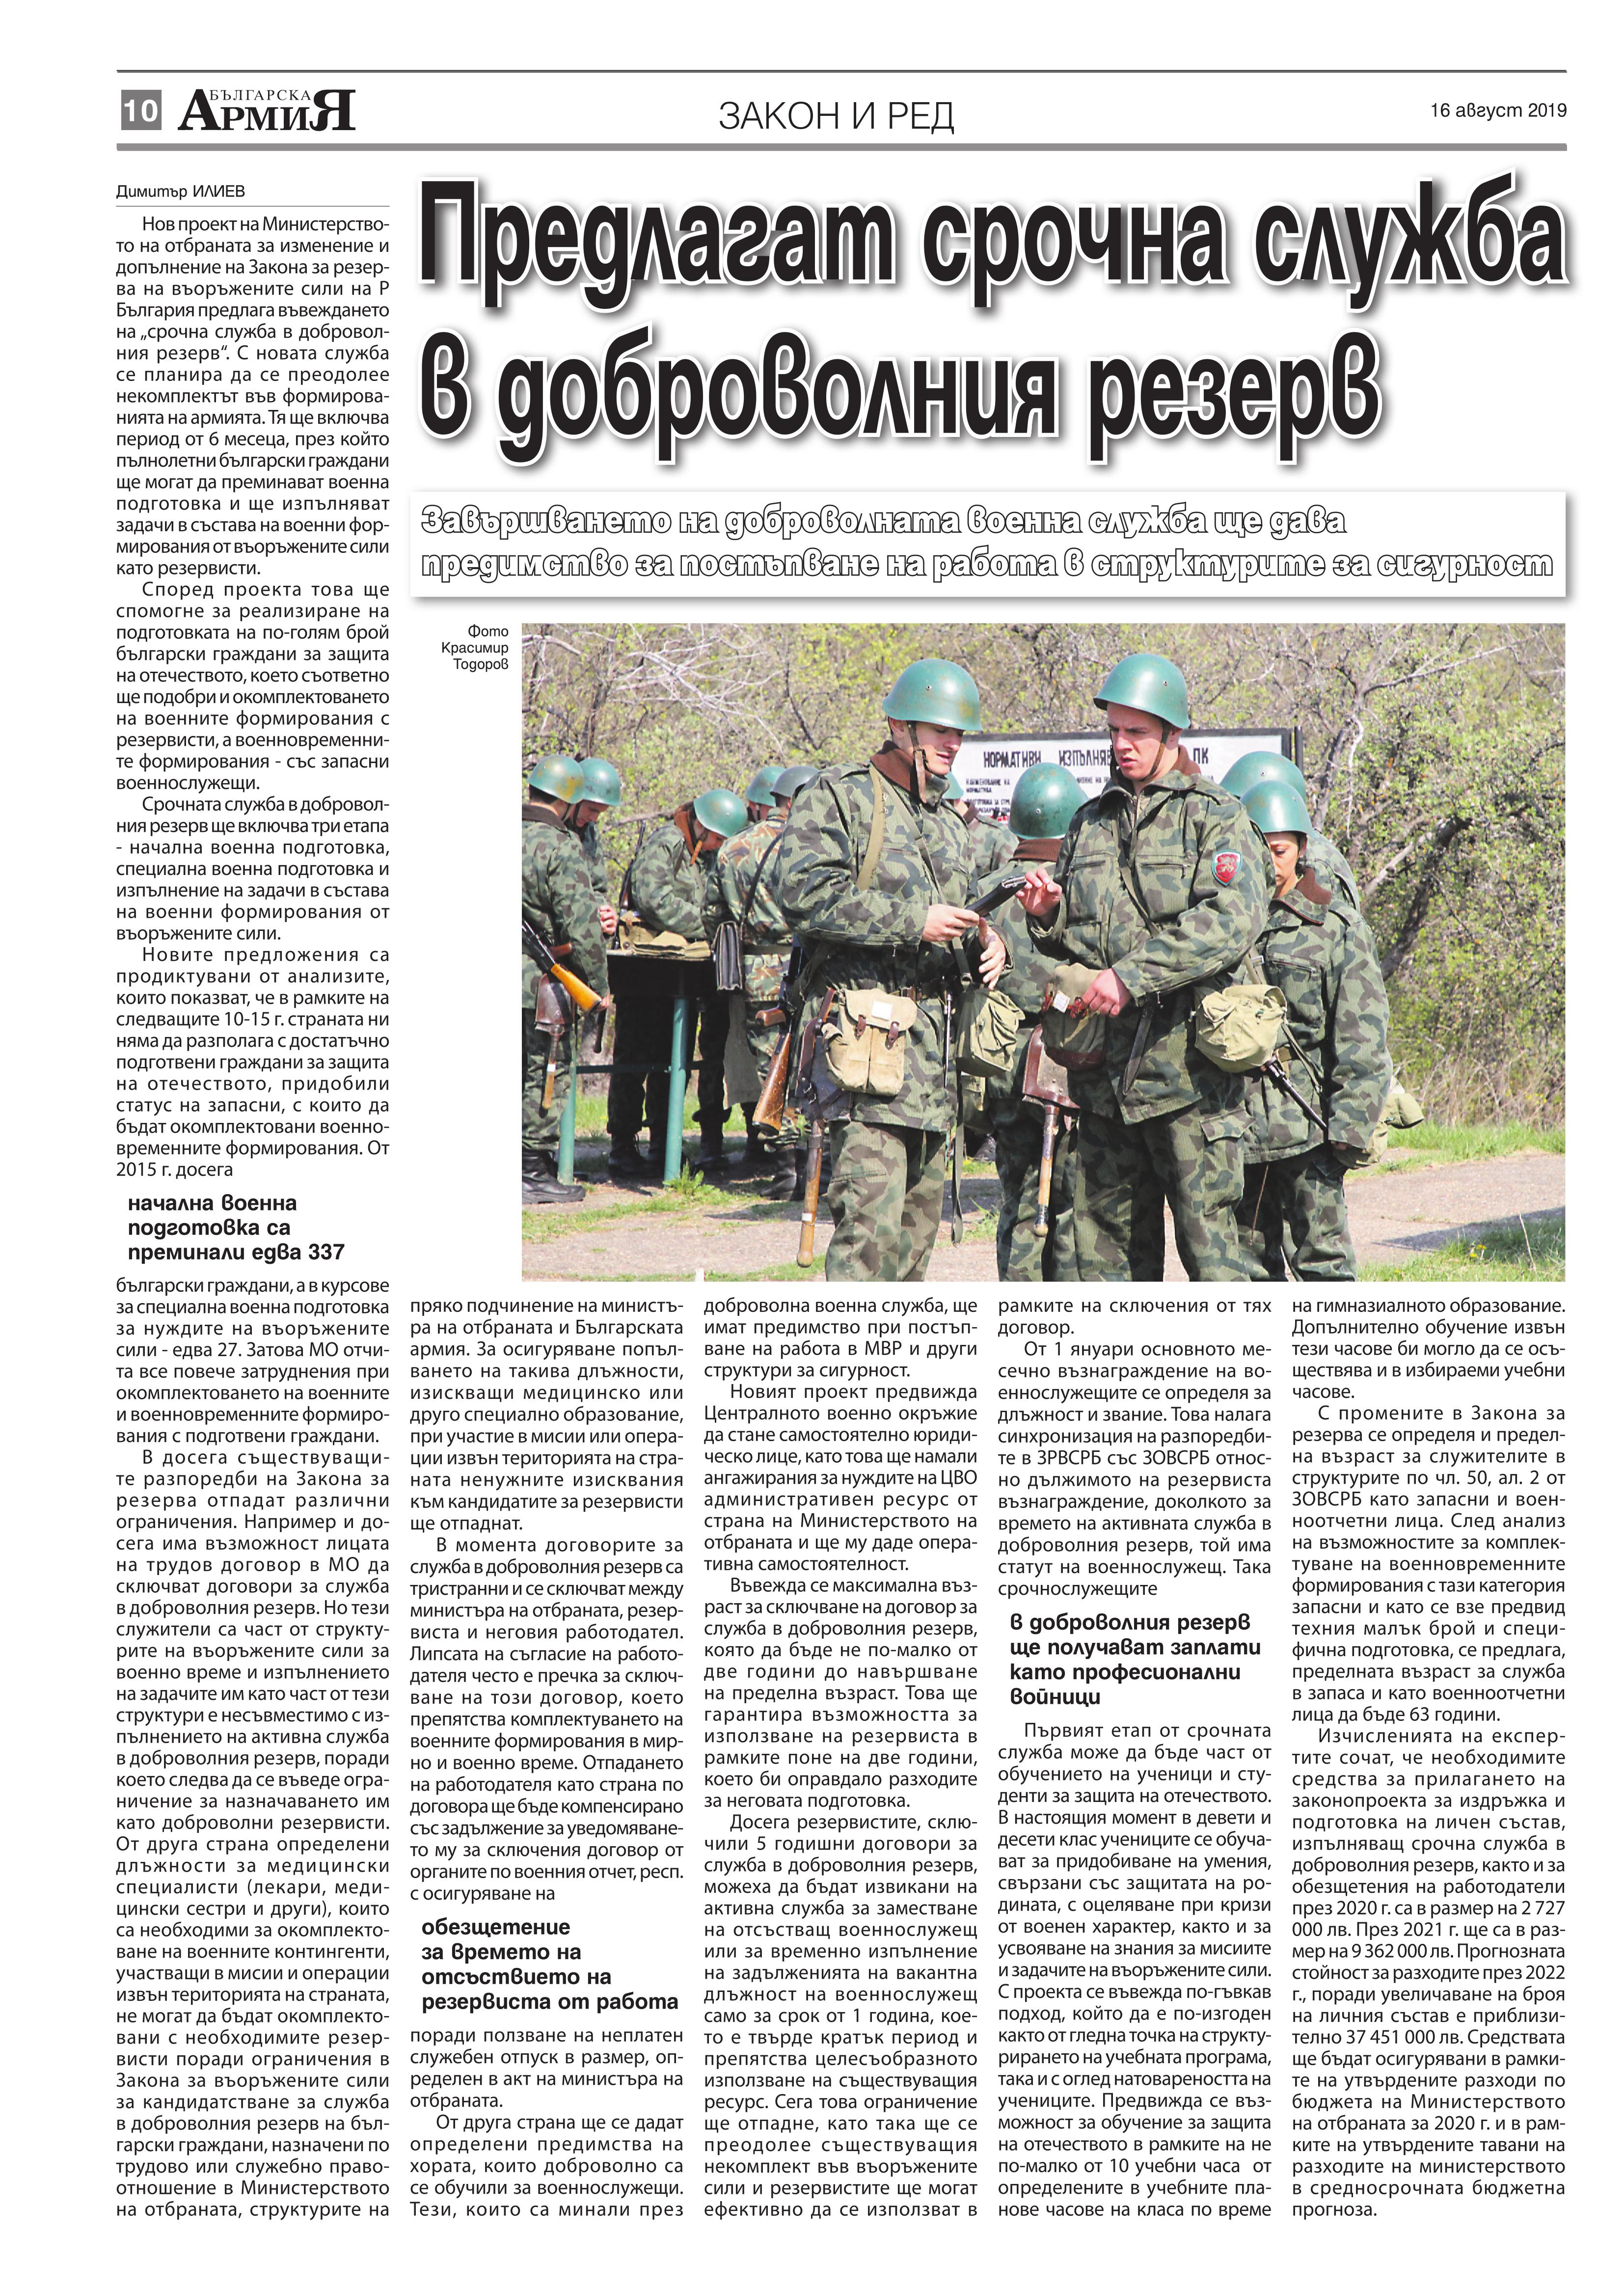 https://www.armymedia.bg/wp-content/uploads/2015/06/10.page1_-107.jpg